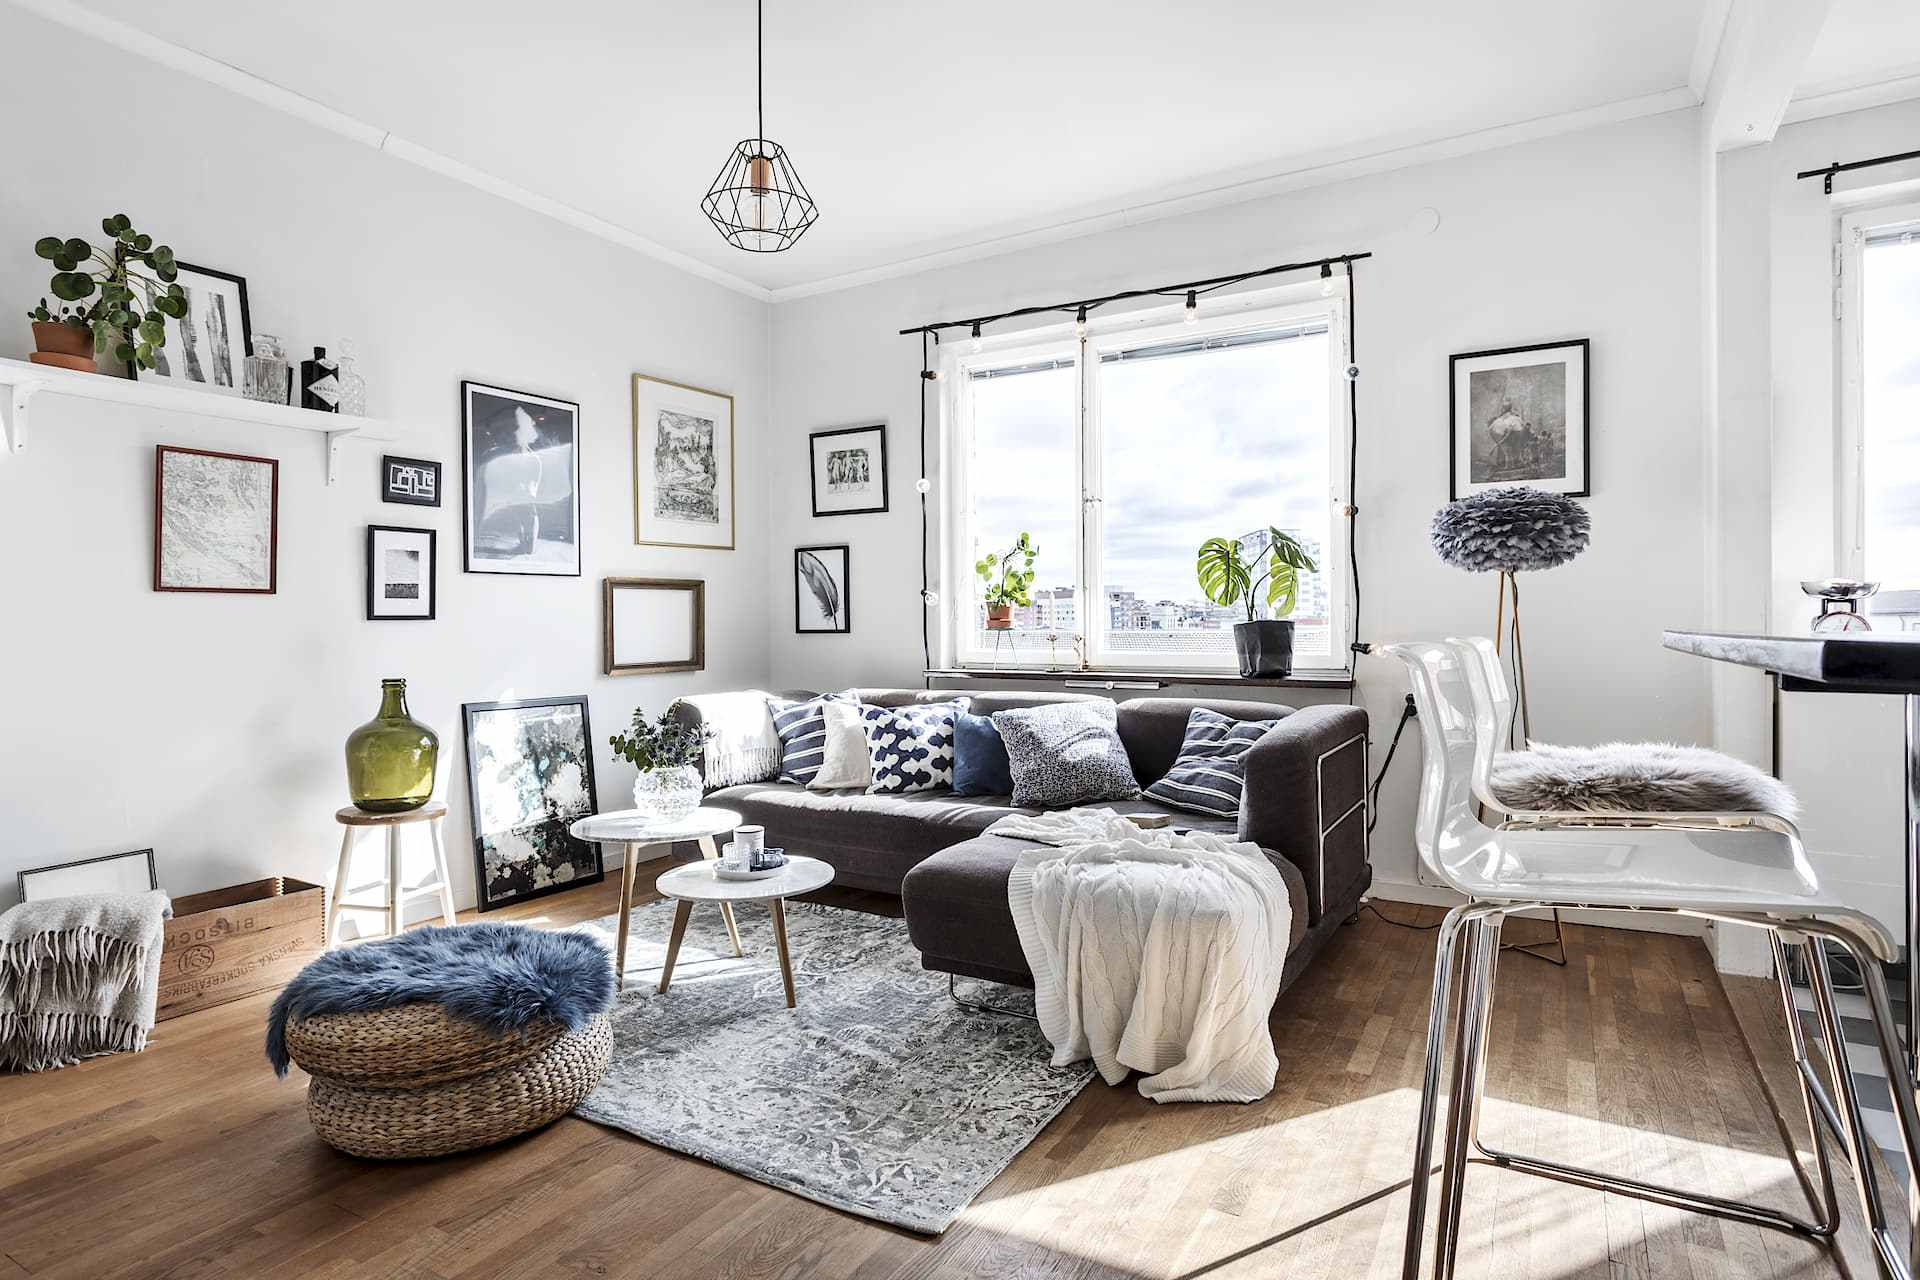 Small Swedish Flat with Open Concept